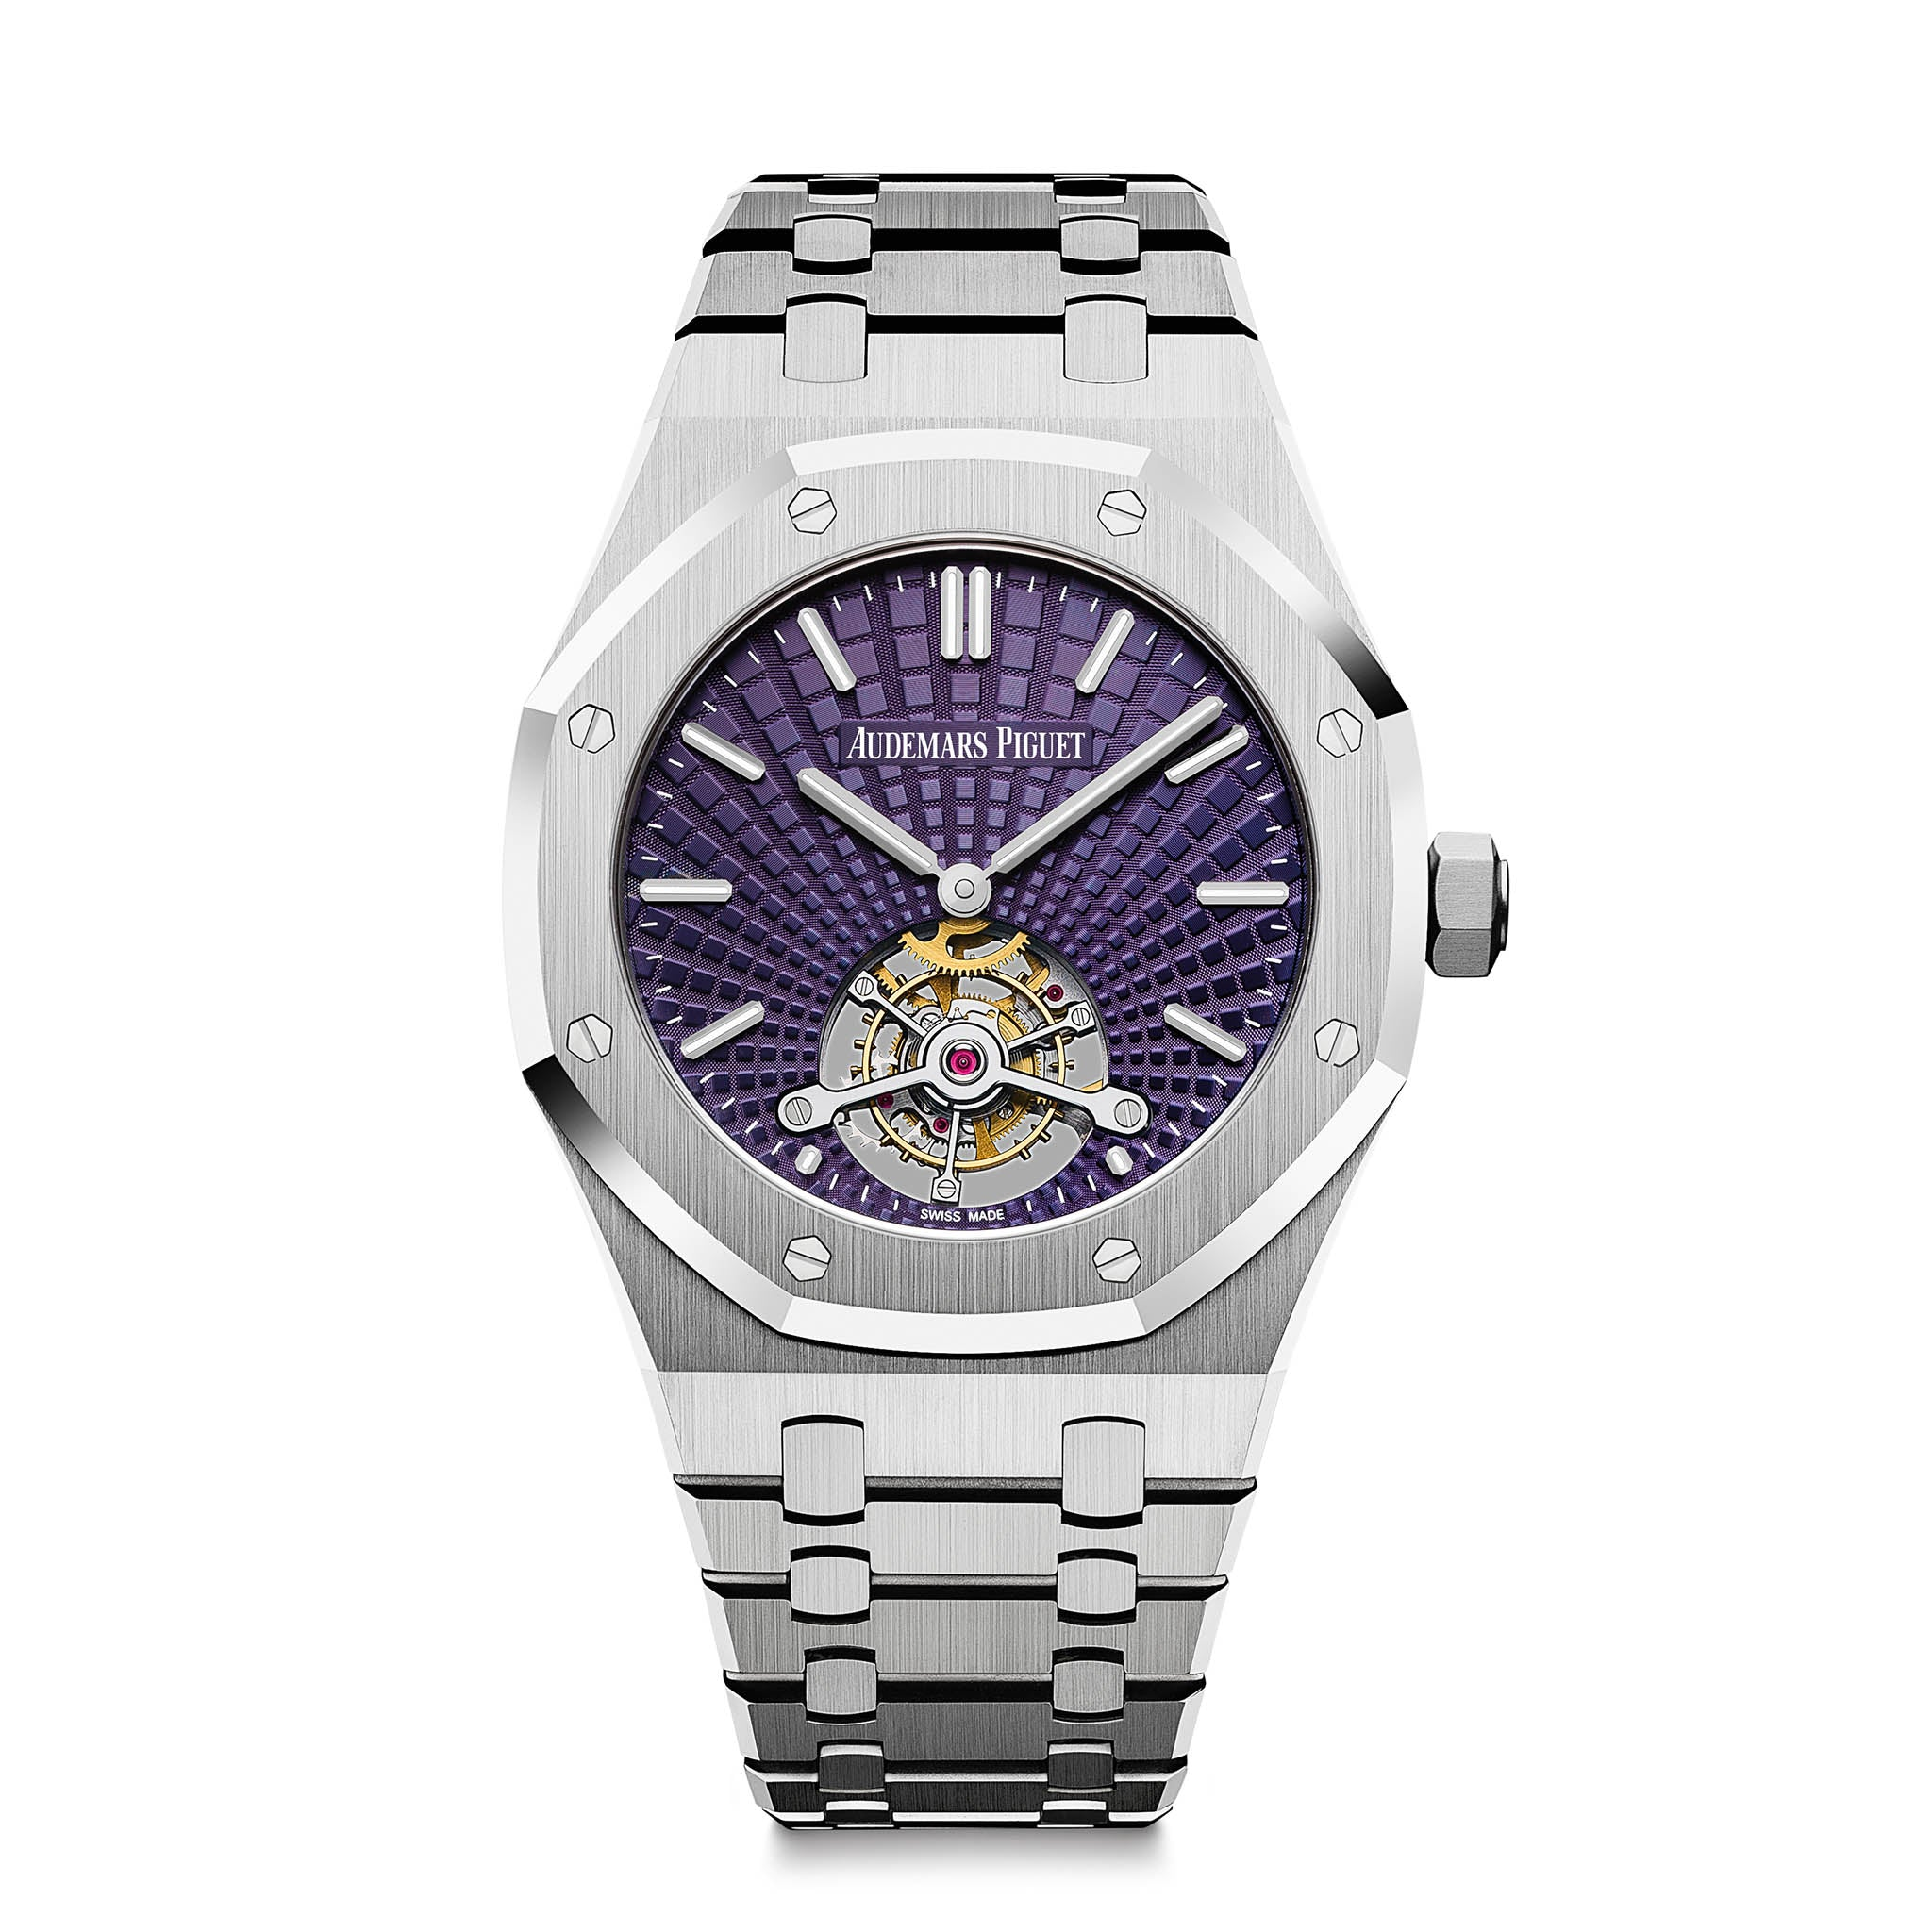 Royal Oak Extra-Thin Tourbillon 26522ST.OO.1220ST.01 - Audemars Piguet